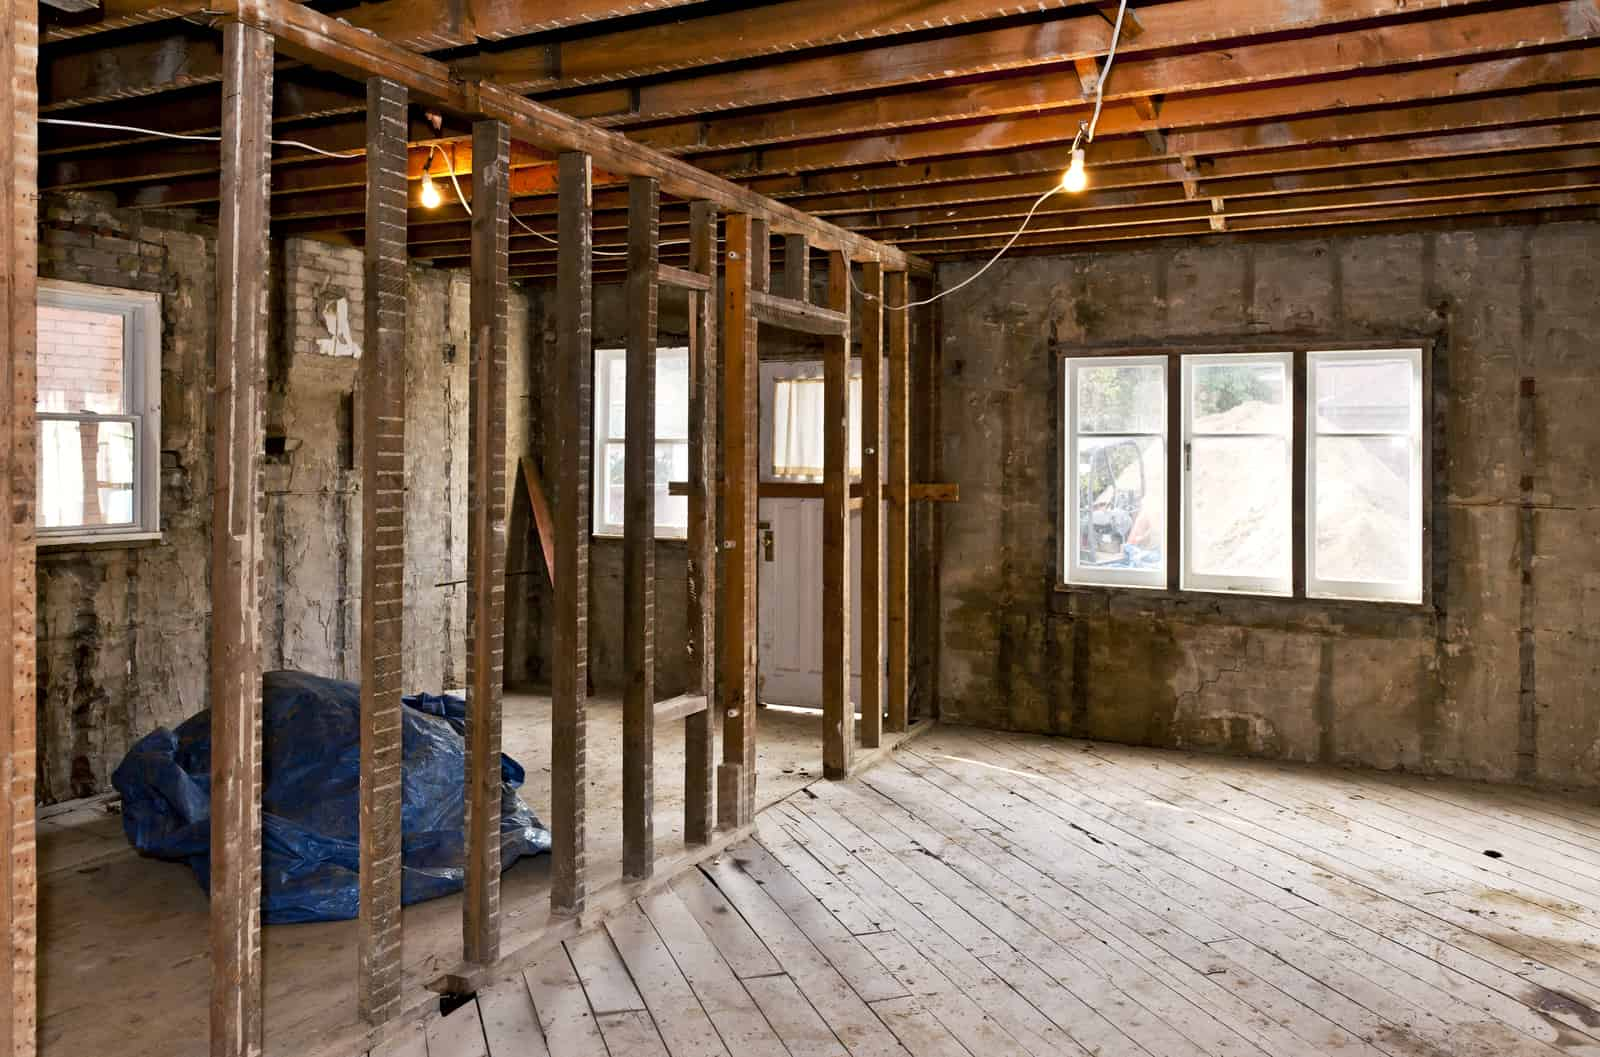 gutting a house for renovation